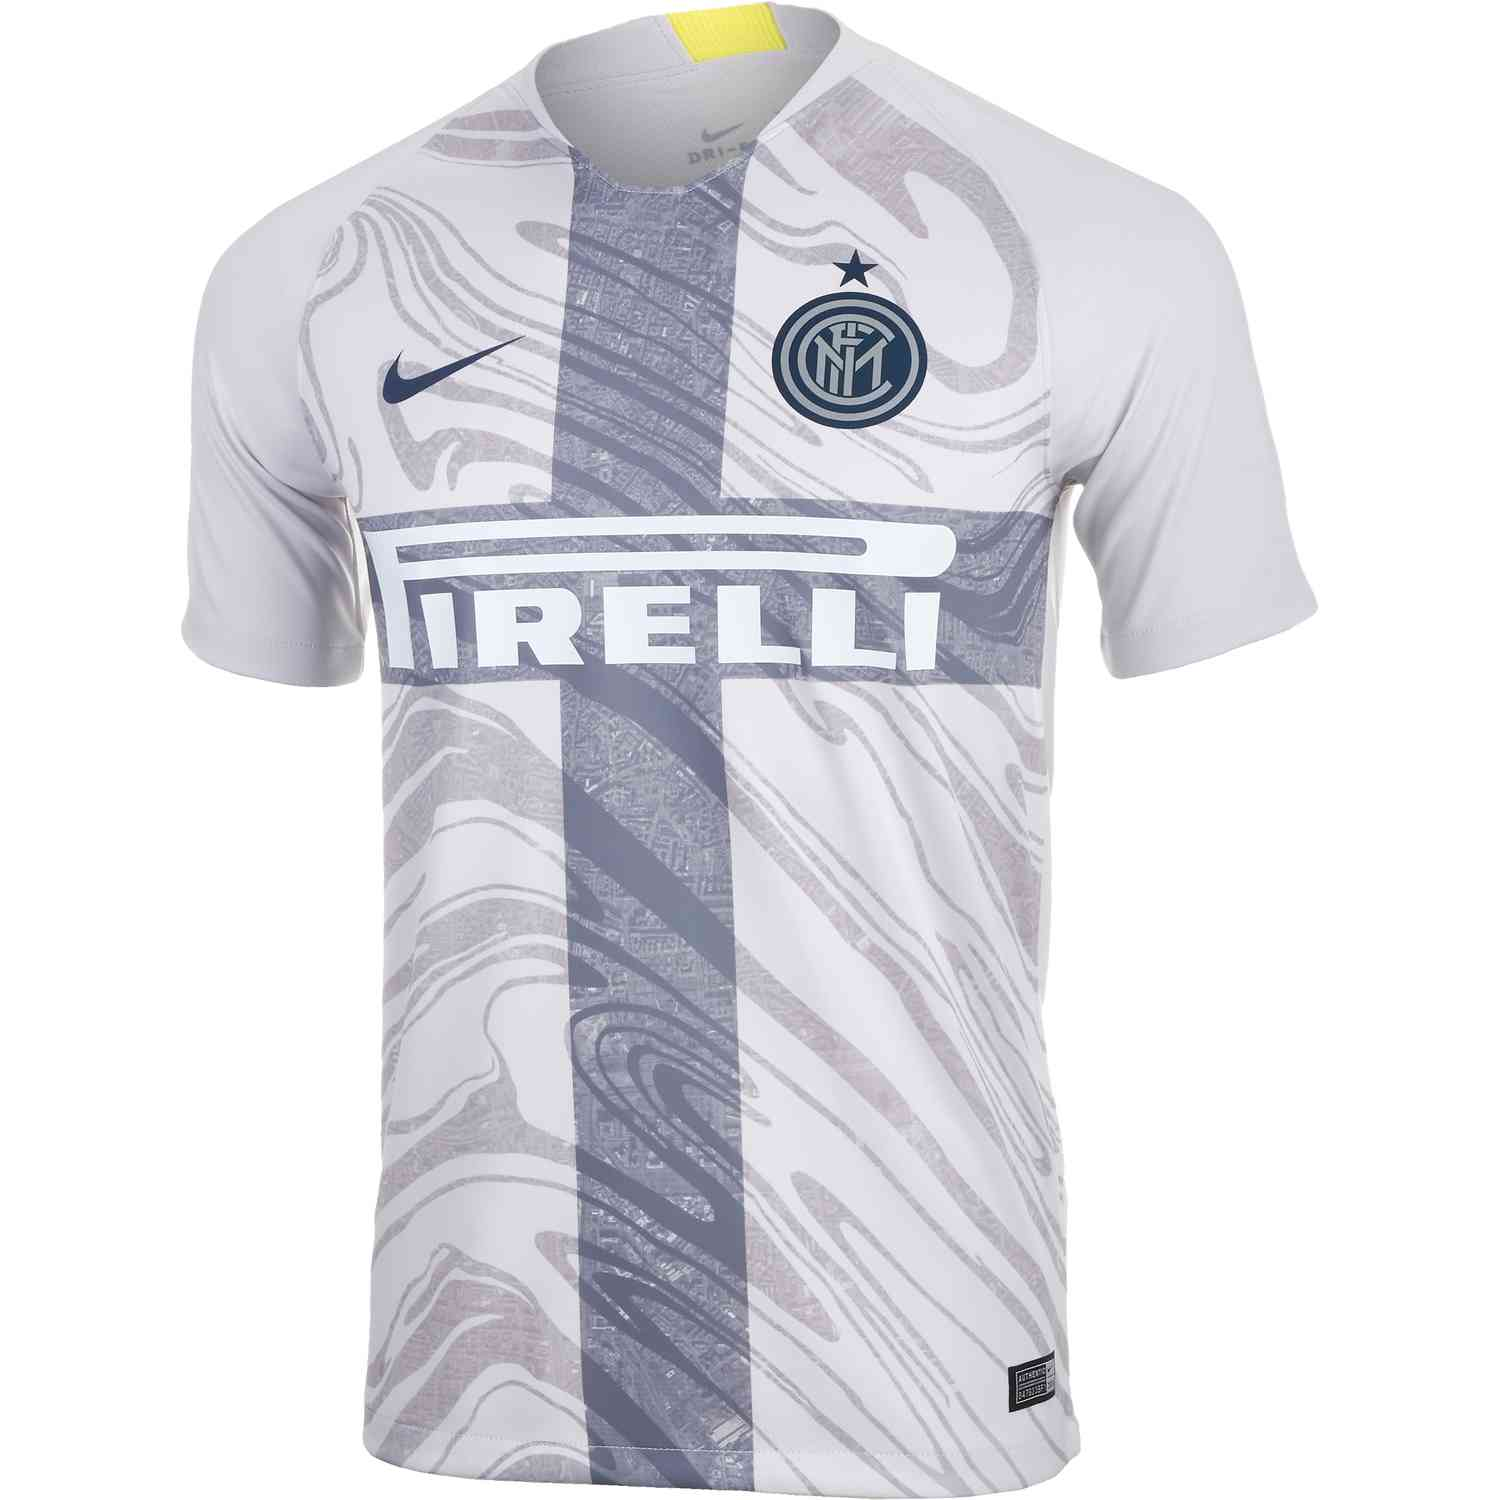 huge discount 374e4 8ce01 Nike Inter Milan 3rd Jersey - Vast Grey/Thunder Blue - SoccerPro